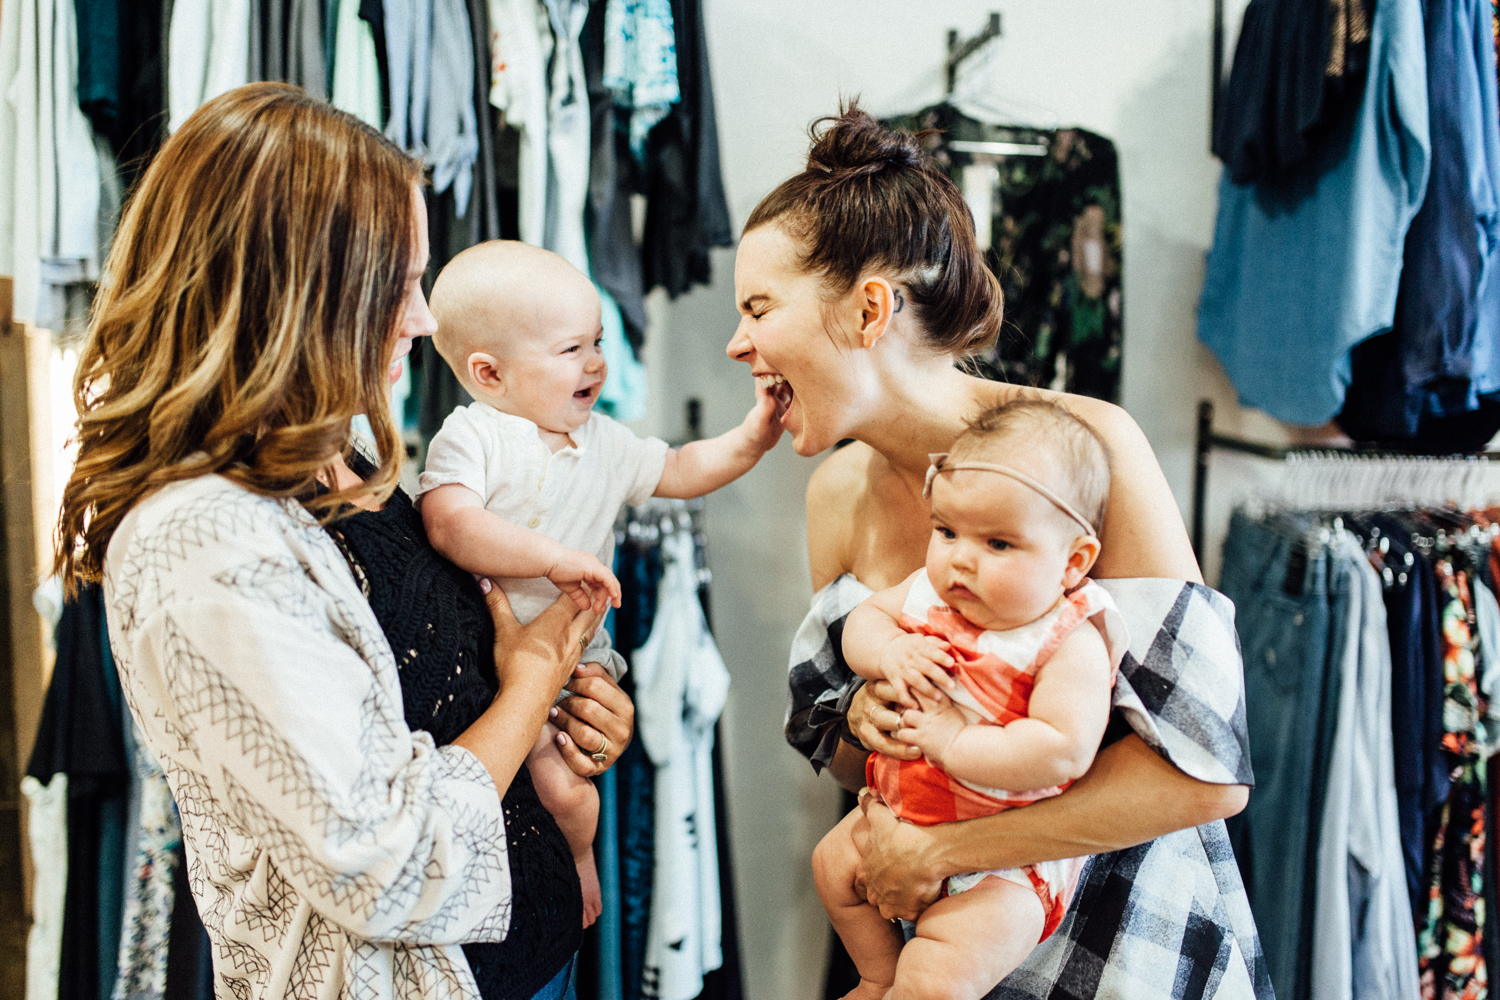 Candid-photo-of-Blaire-Isleib-and-Kristen-Doyon-working-moms-and-owners-of-Flight-Boutique